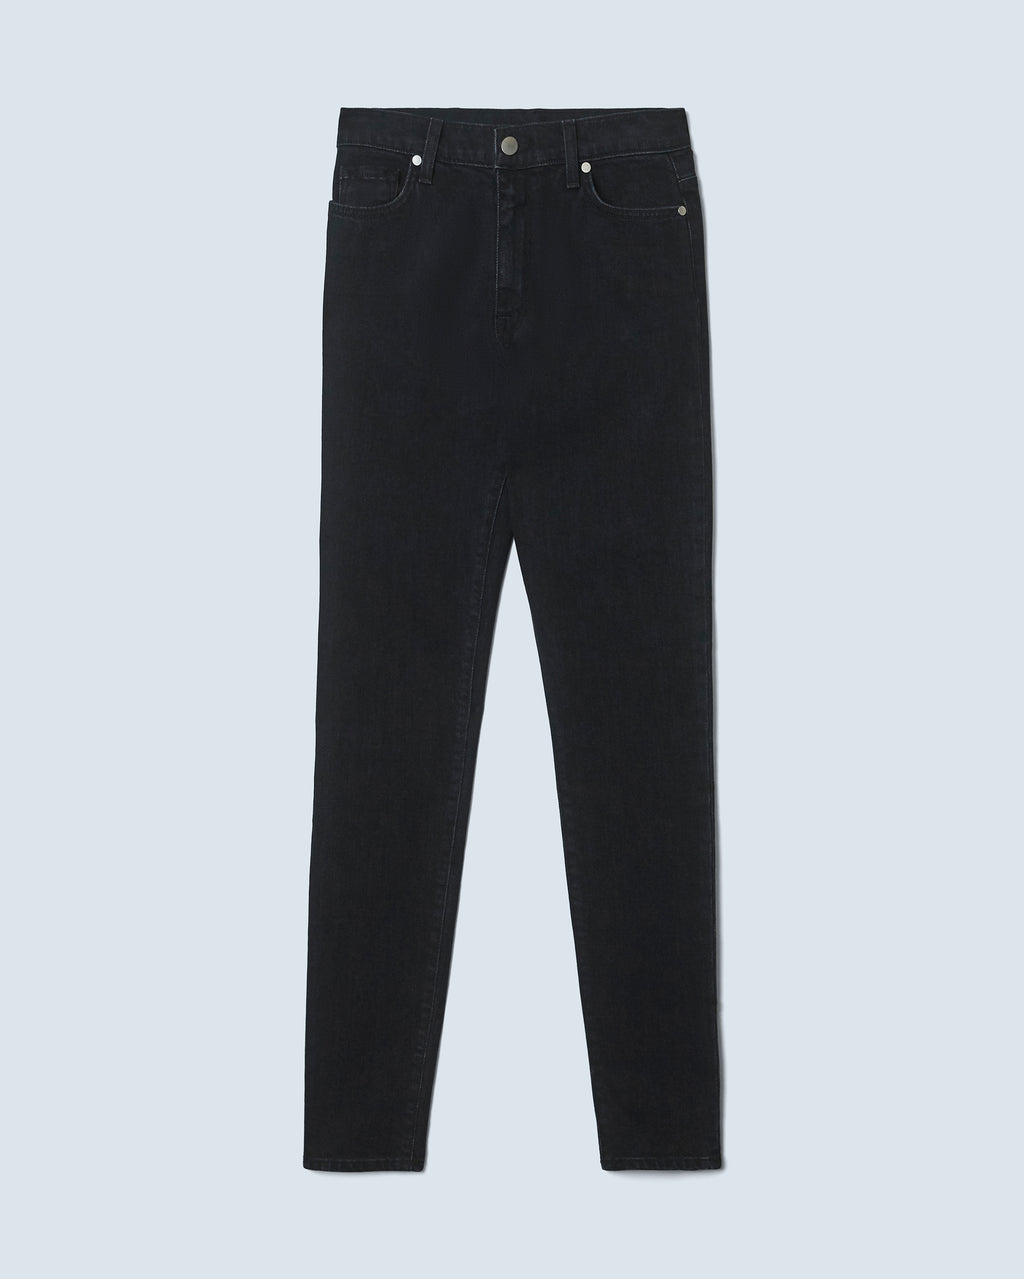 The Ultra High Rise Skinny Jean in Carbon Black